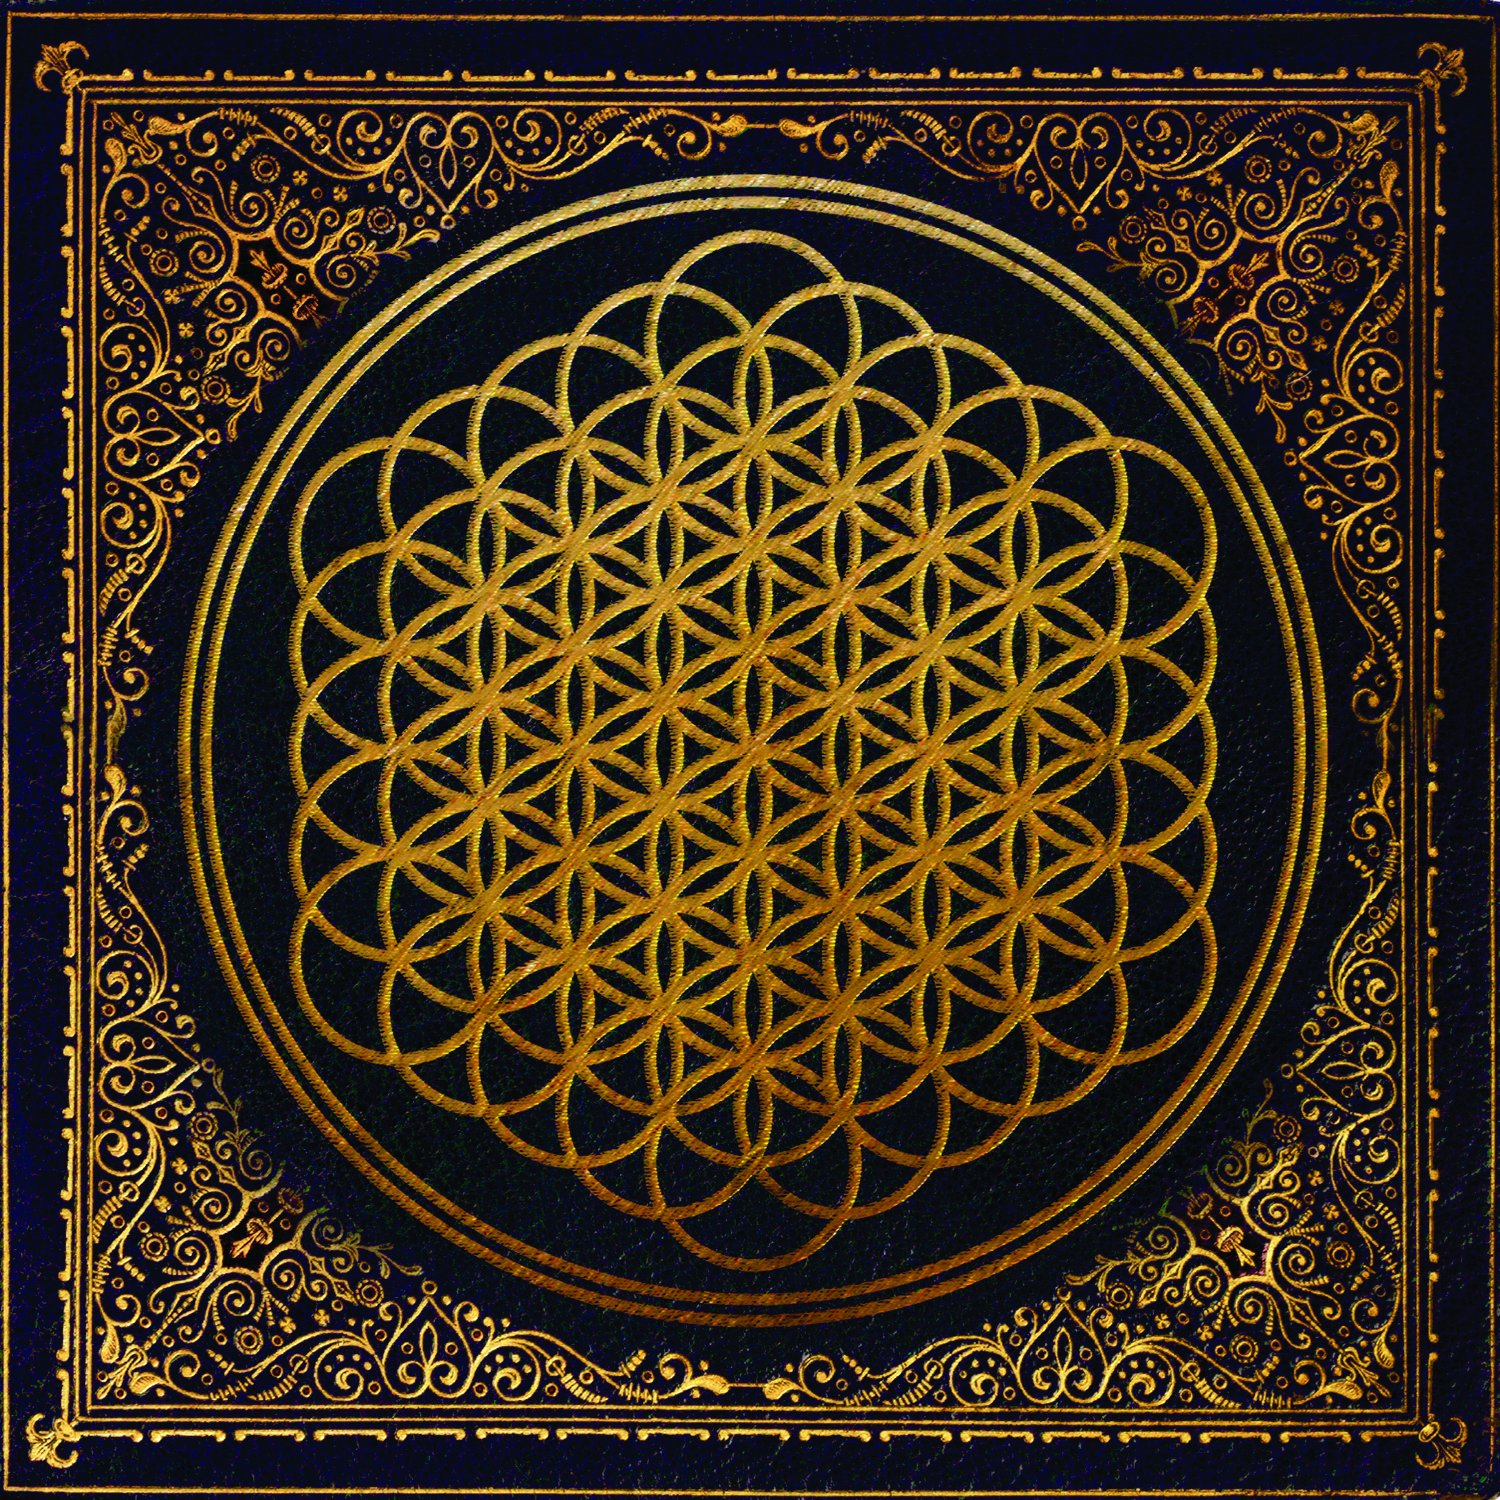 Sempiternal - Bring Me The Horizon | 2013 AltPress Readers Poll